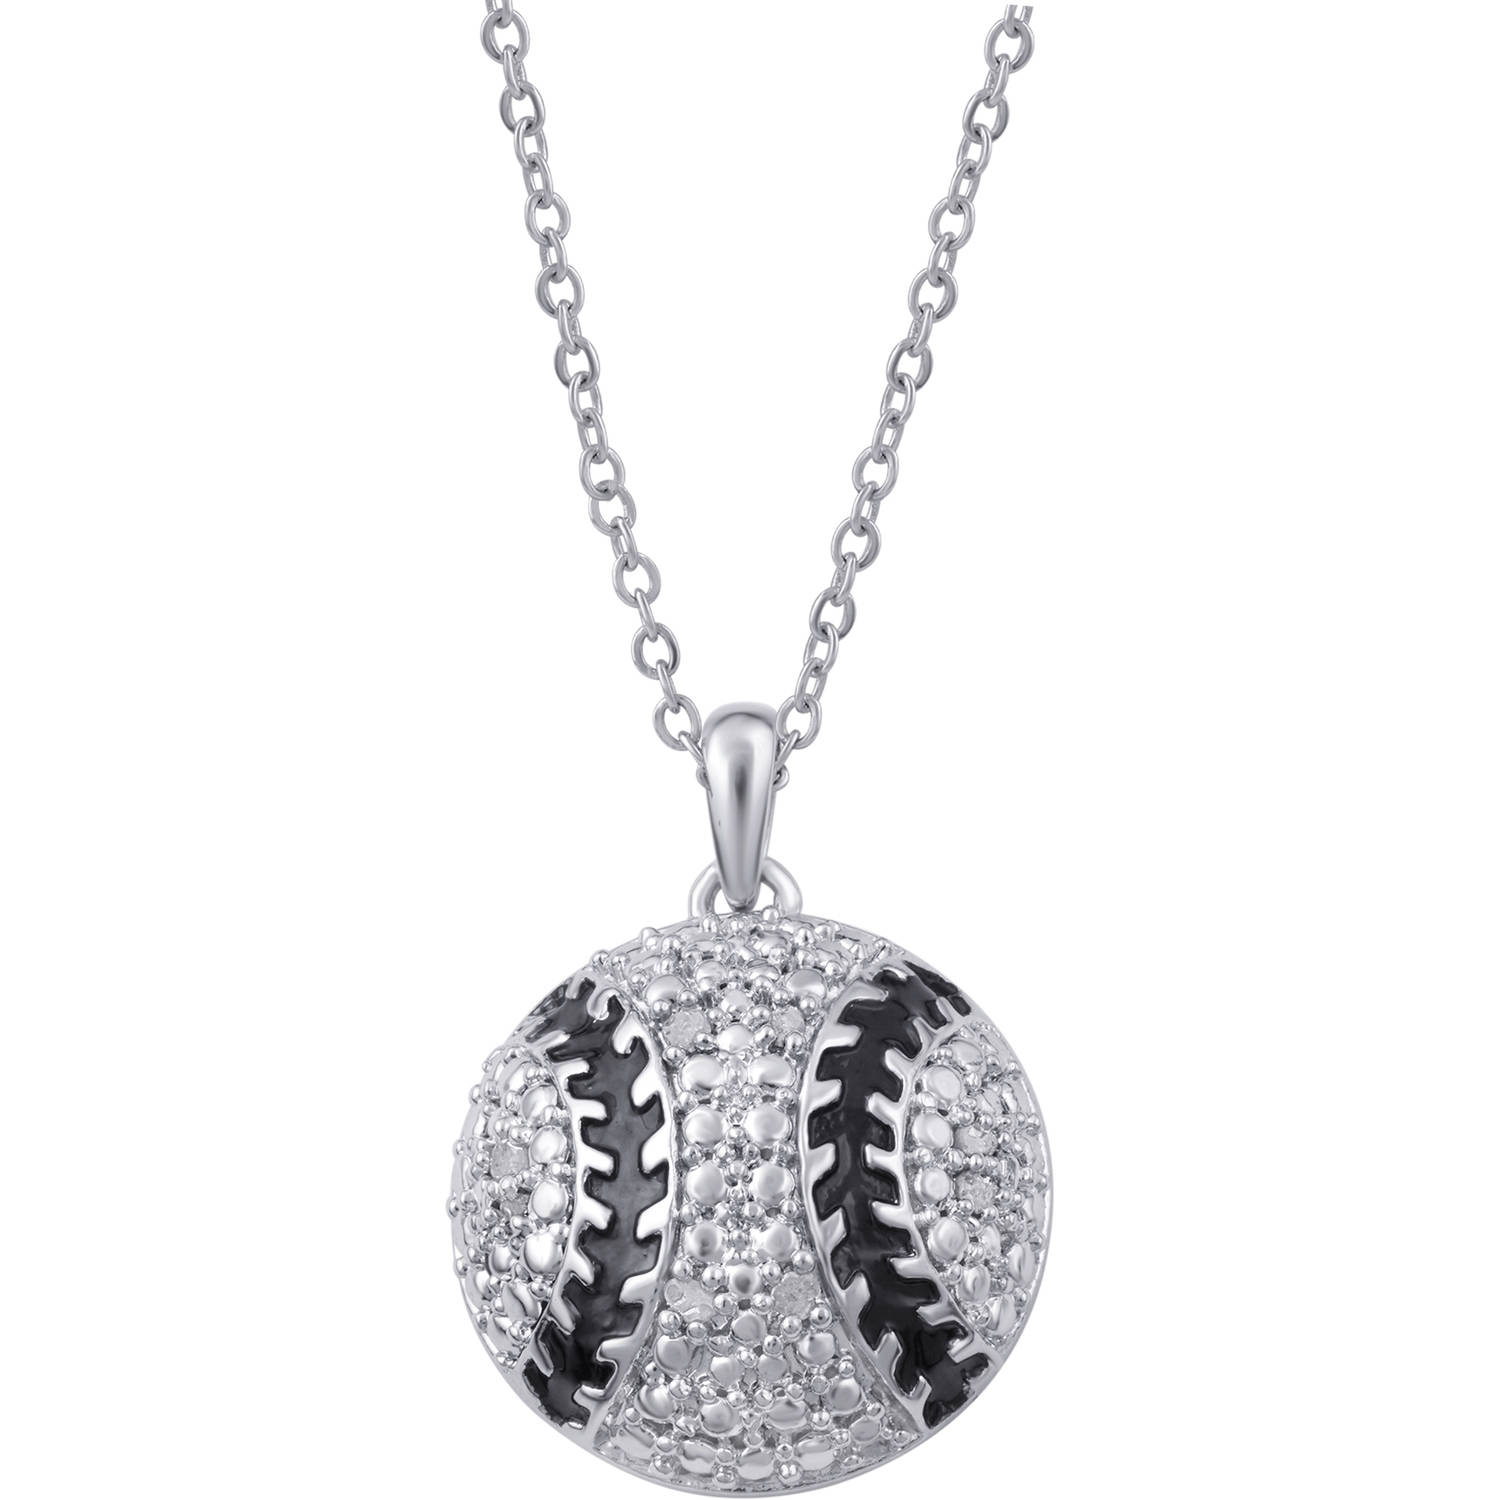 silver products necklace tinksjewelry baseball pendant sports girlfriend